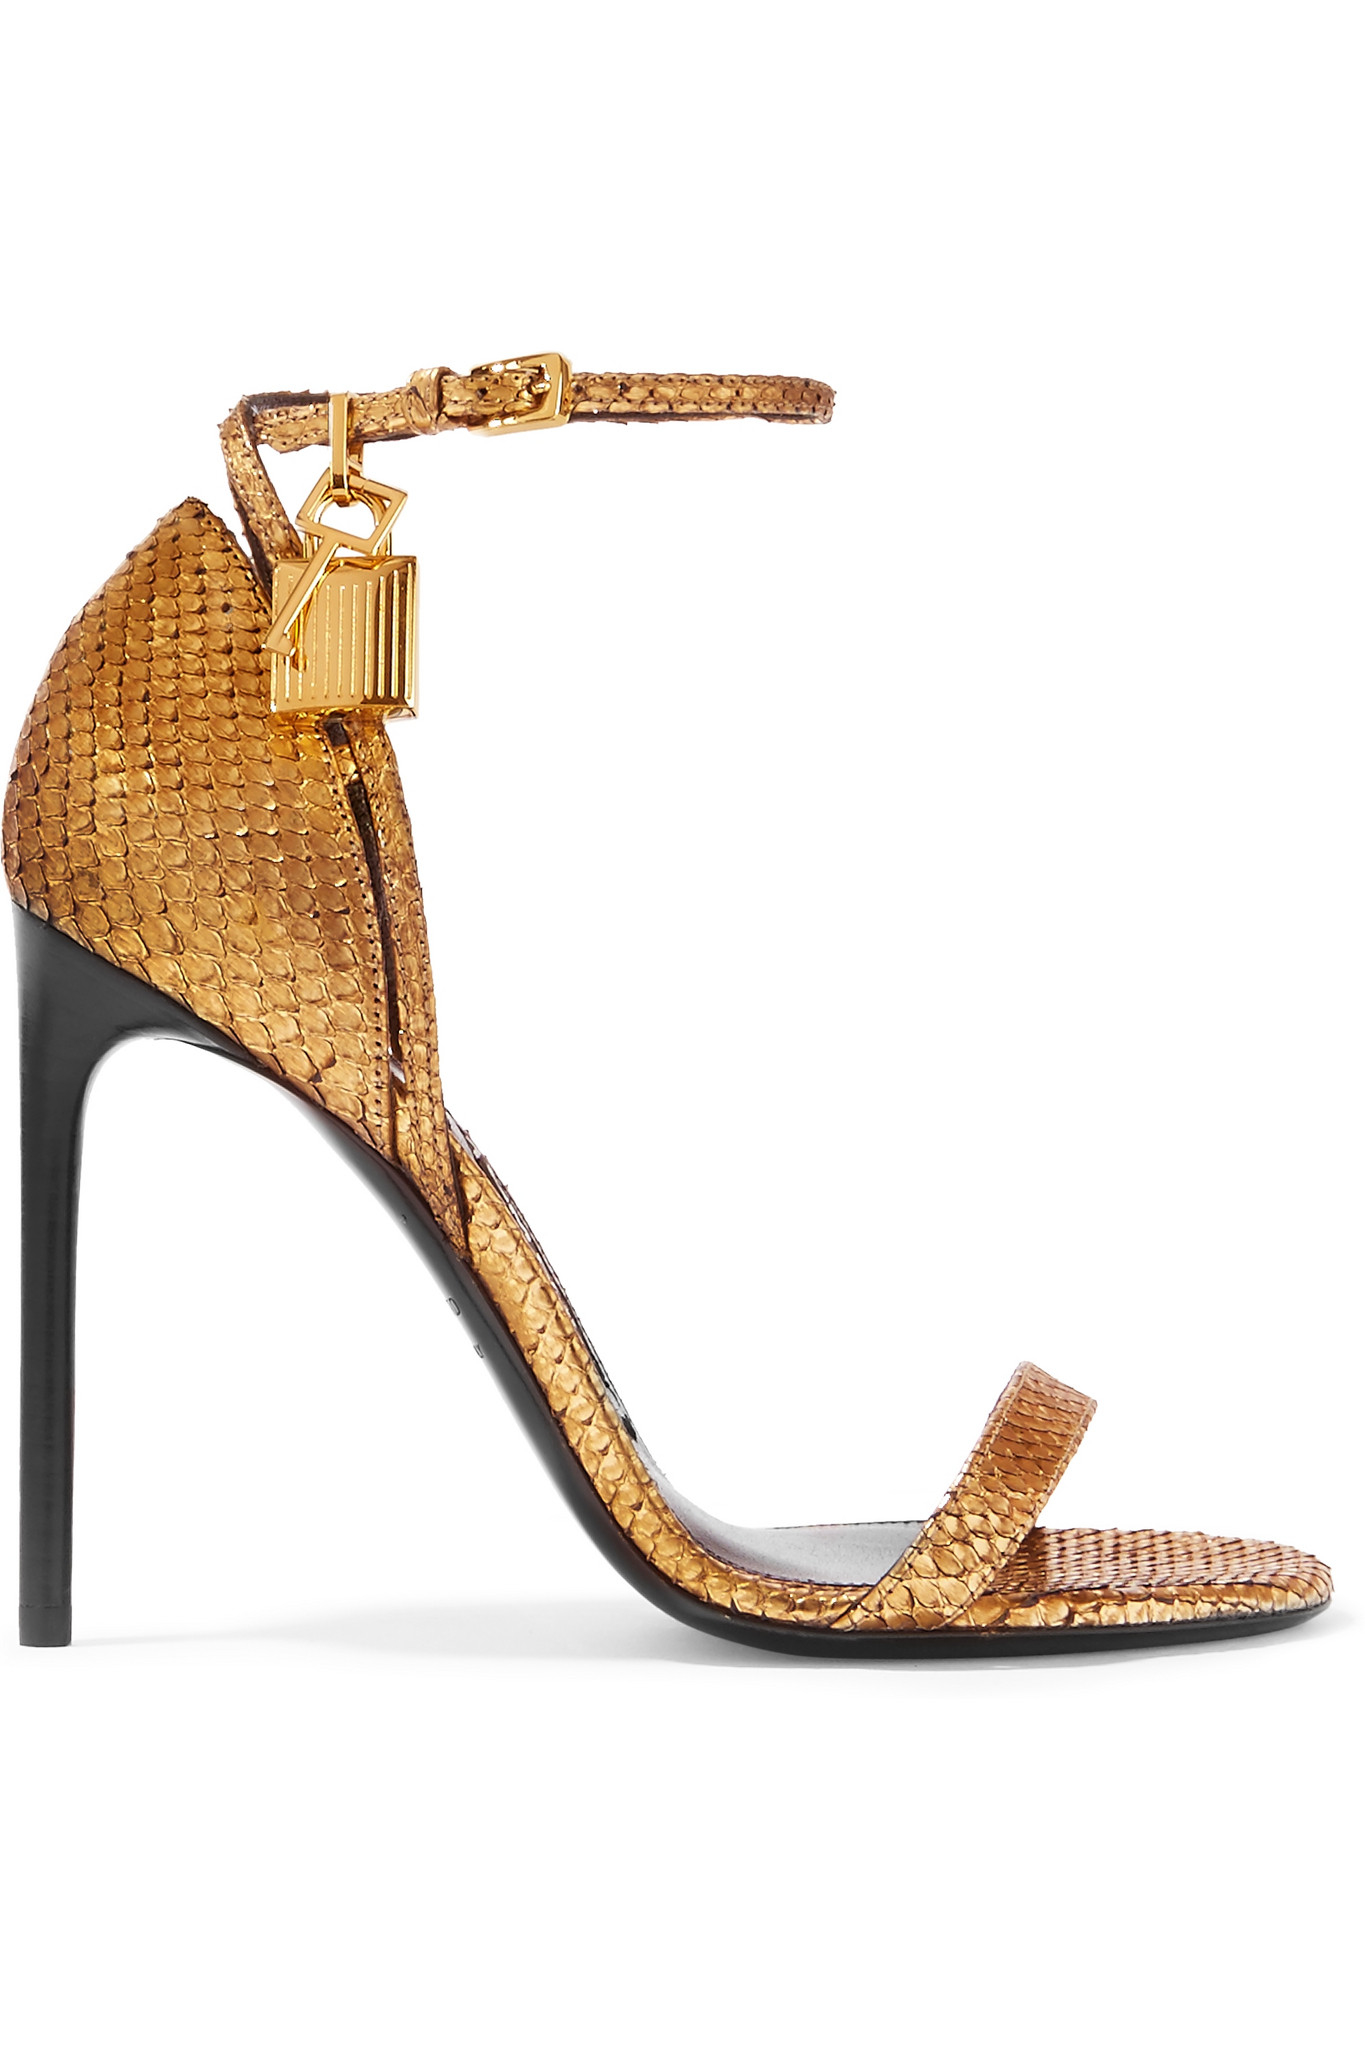 49593dce1e Tom Ford Python Sandals in Metallic - Lyst